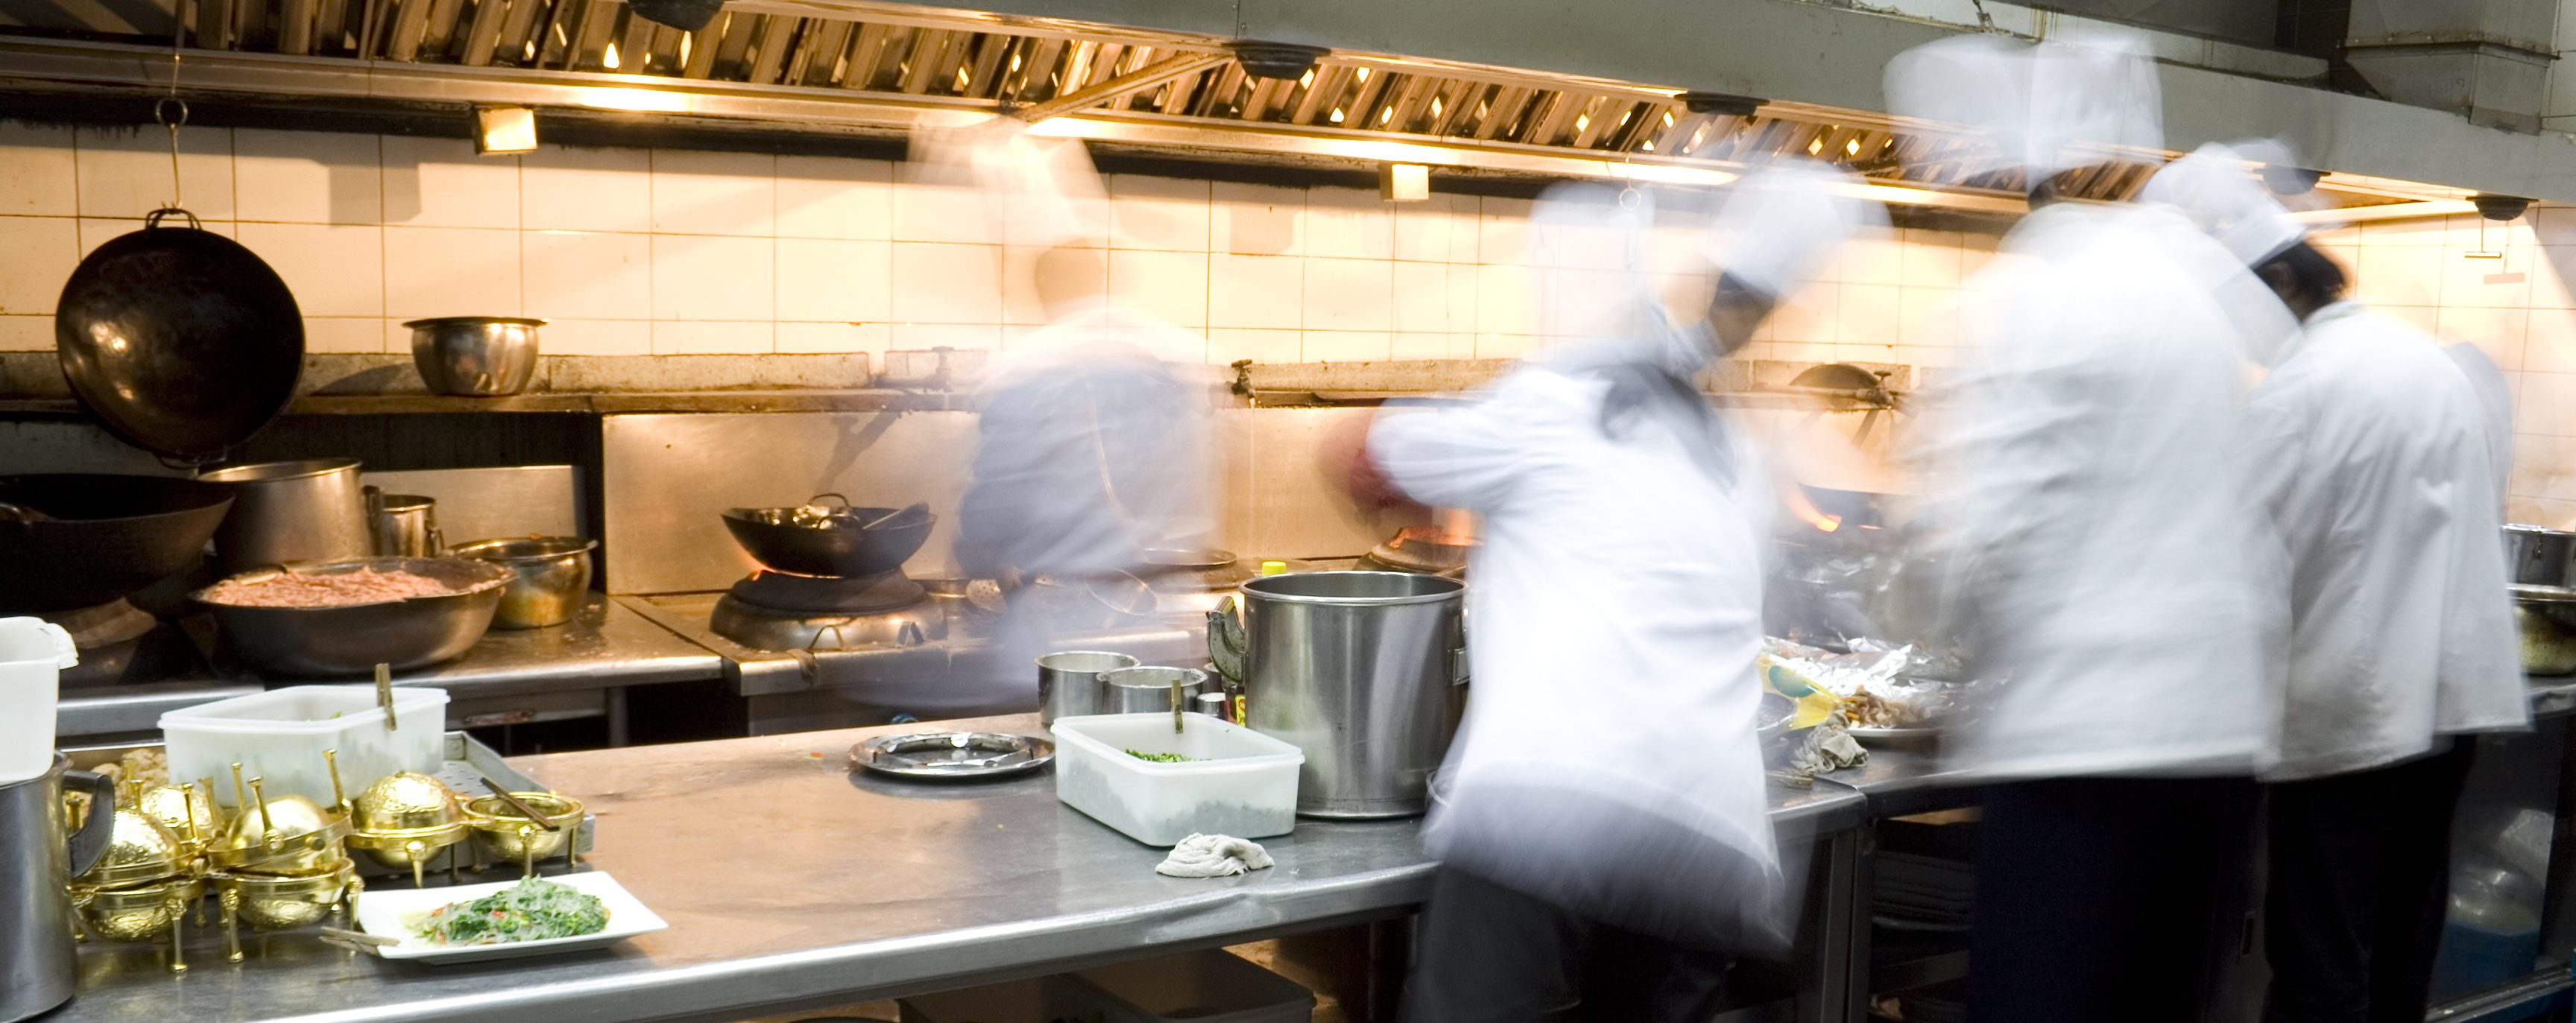 restaurant kitchen insurance - About Us